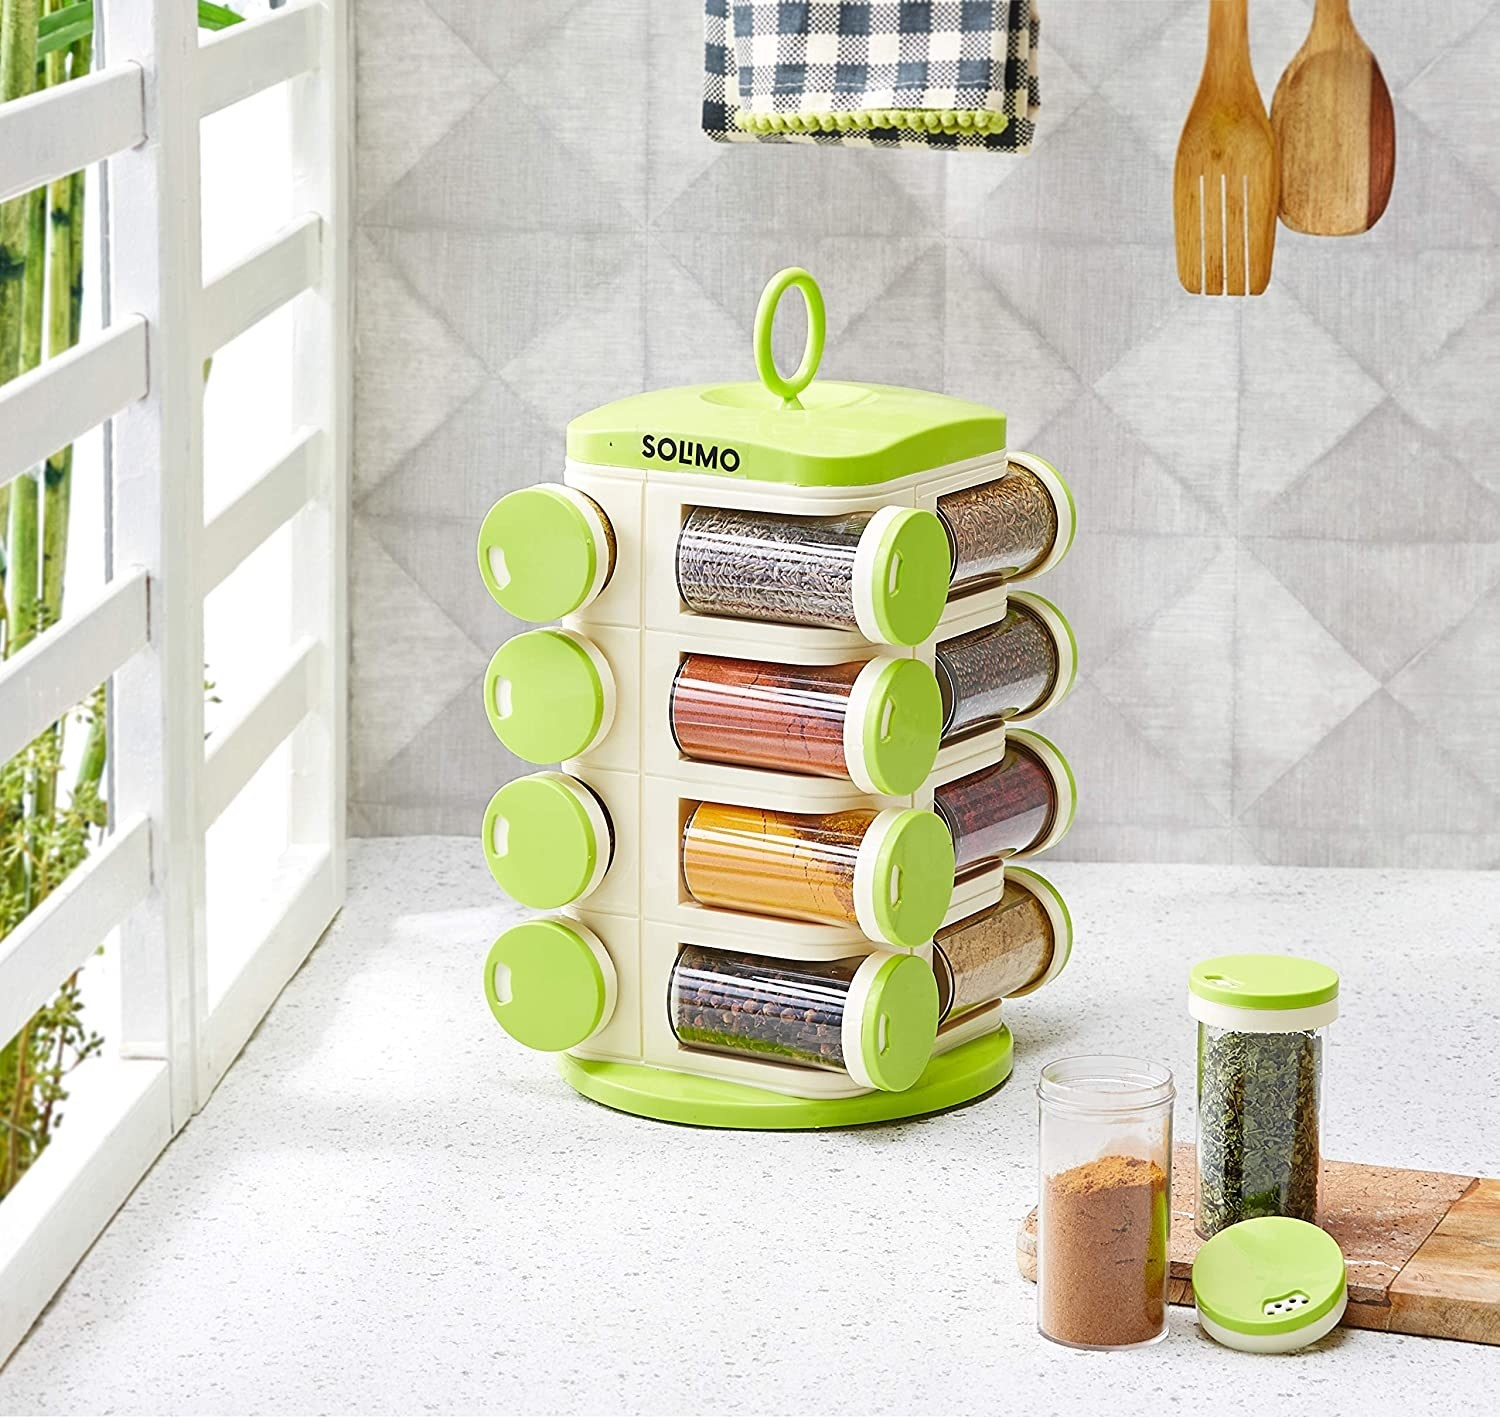 A rotating spice organiser with different spices in it next to spices on a chopping board